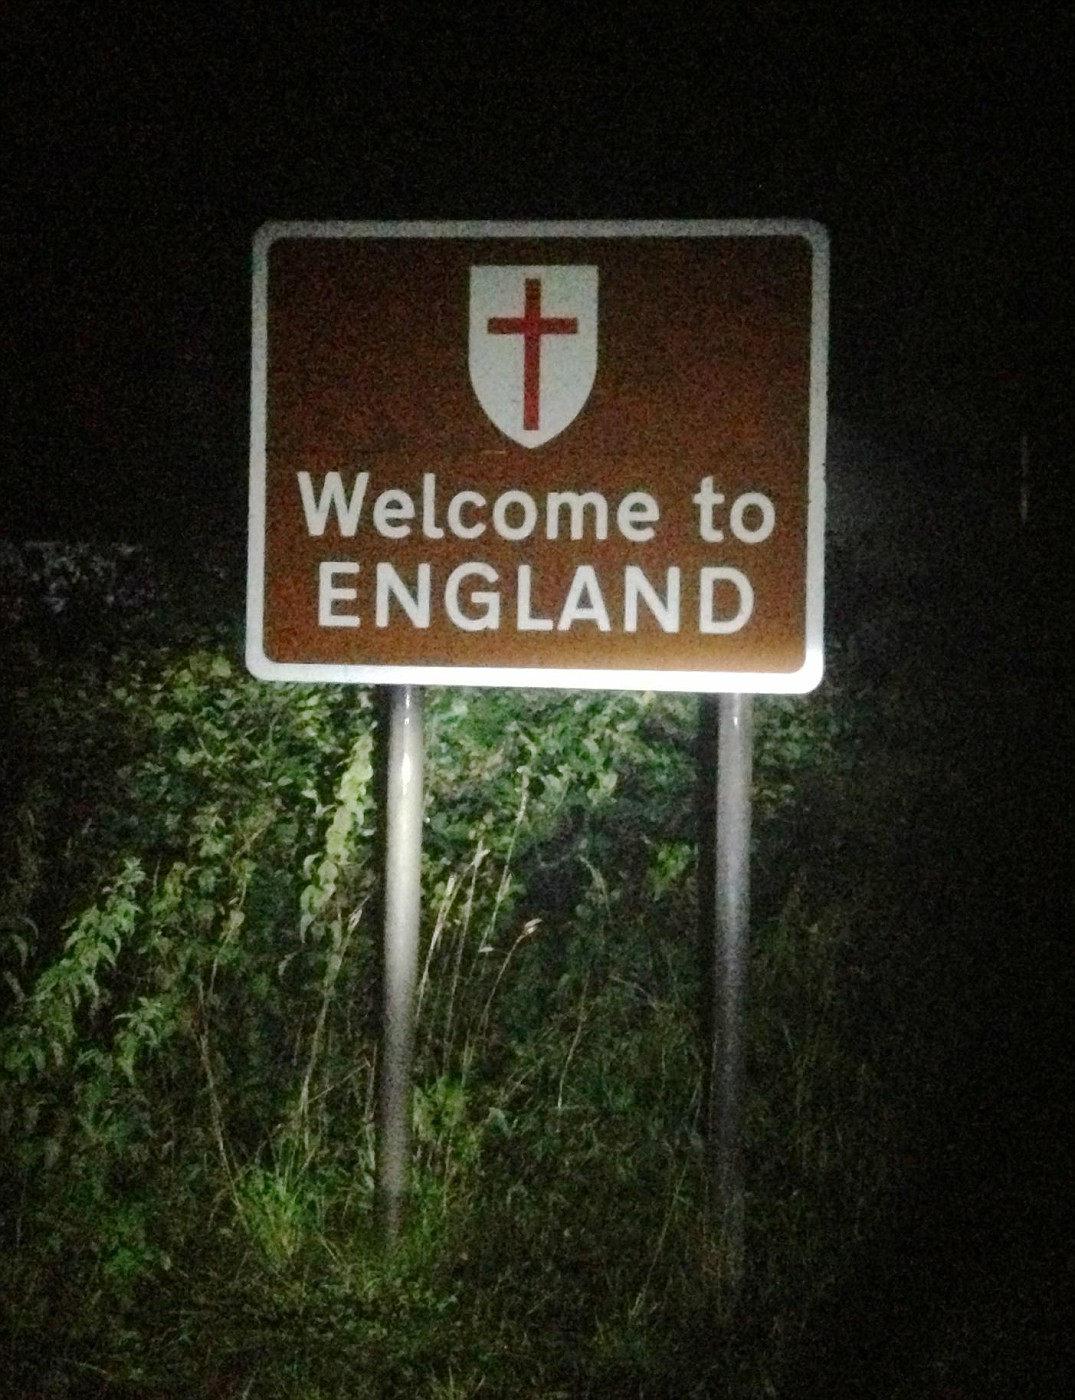 Back in England